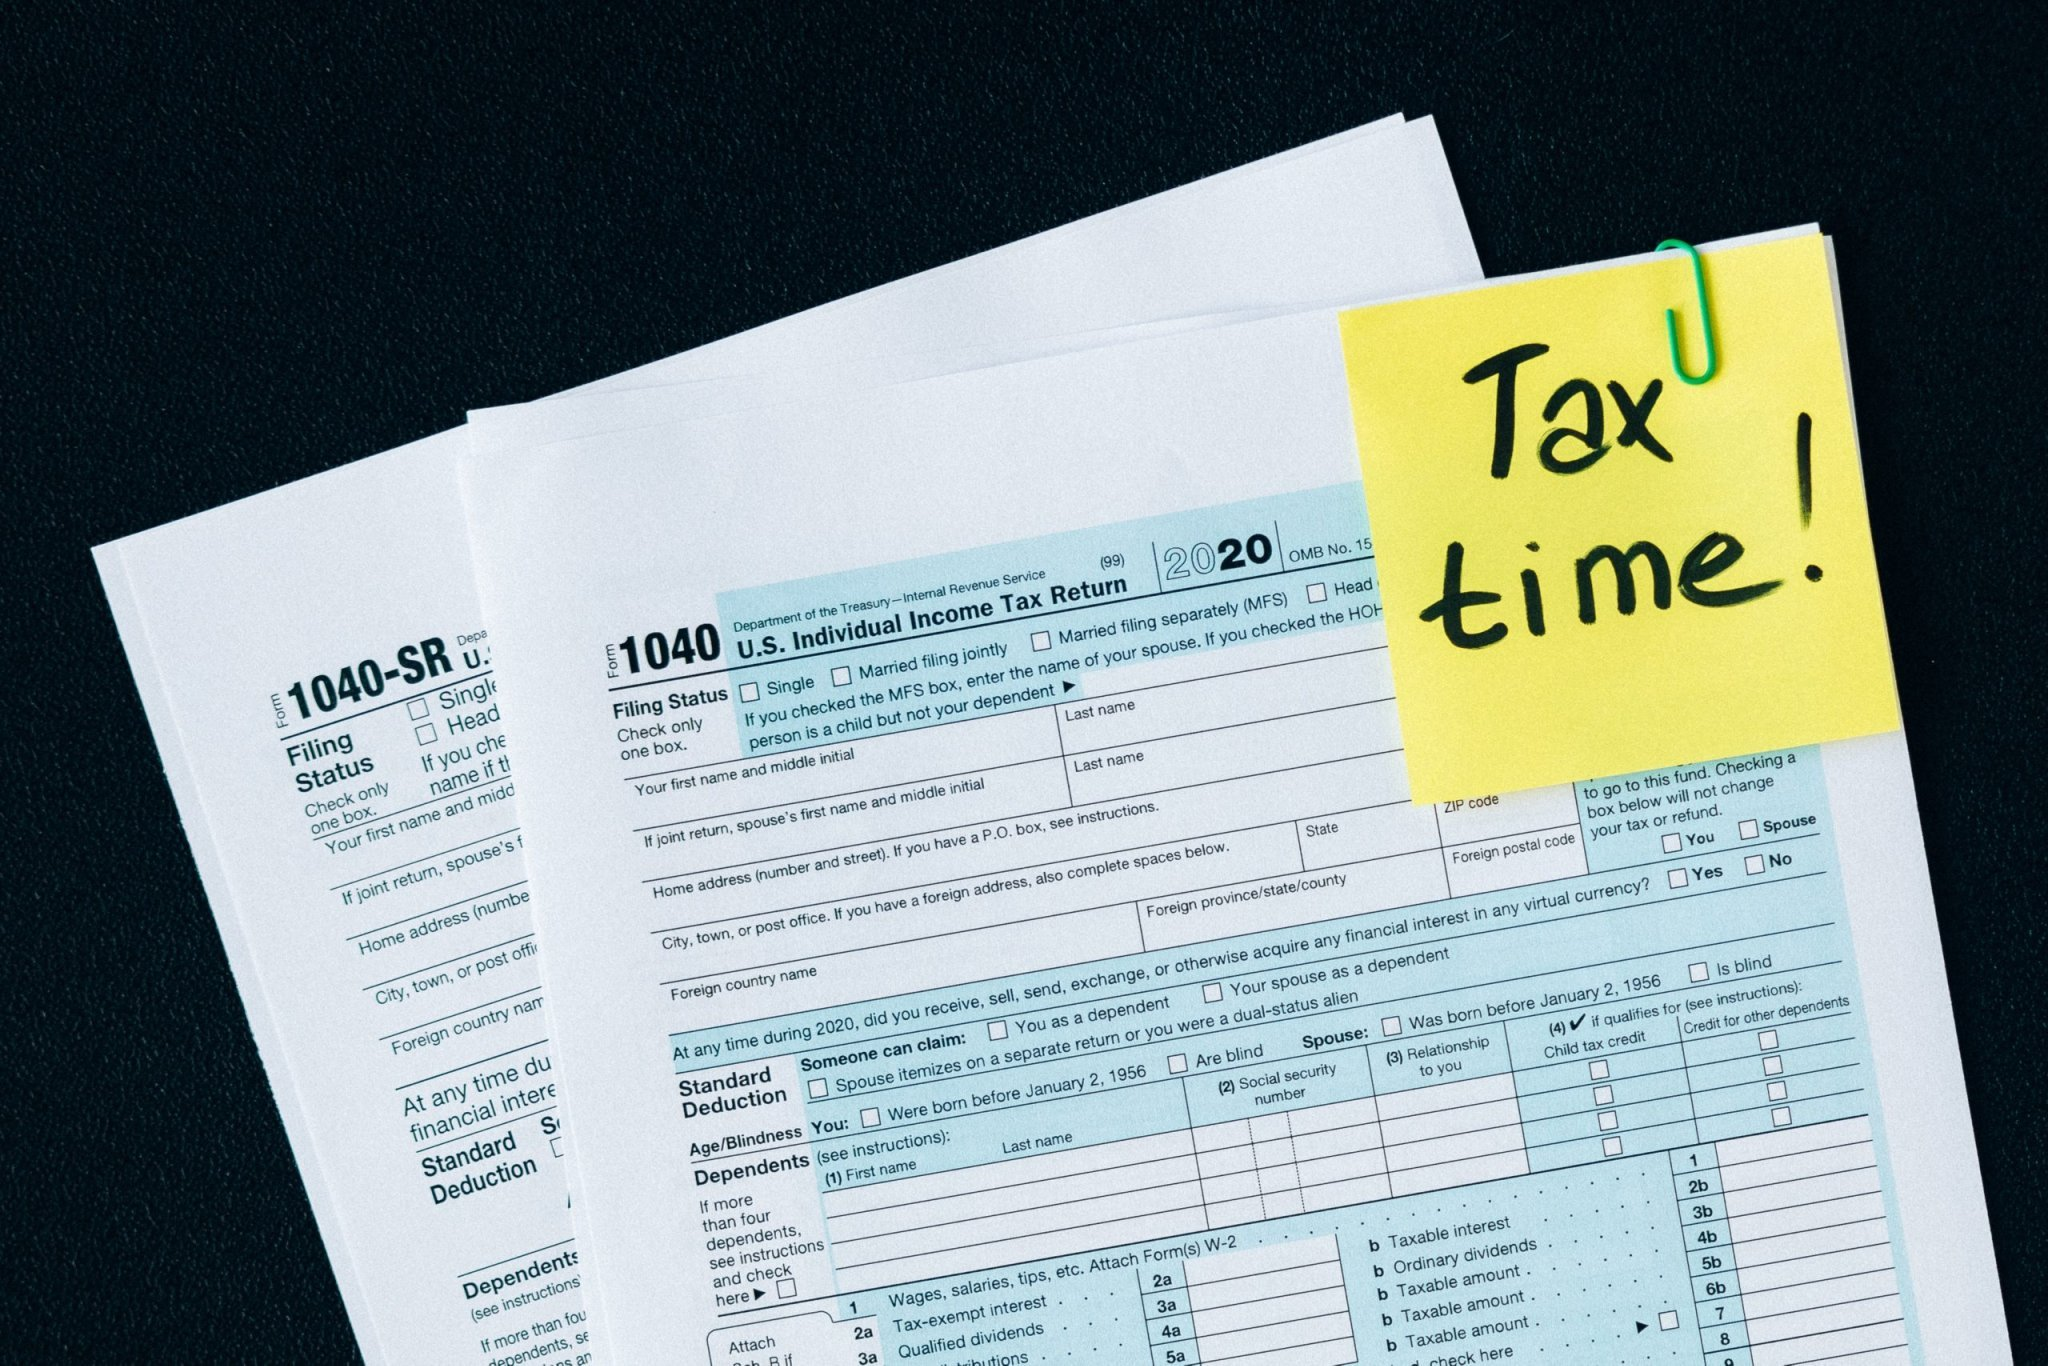 Do not throw away the IRS letter you received about your stimulus